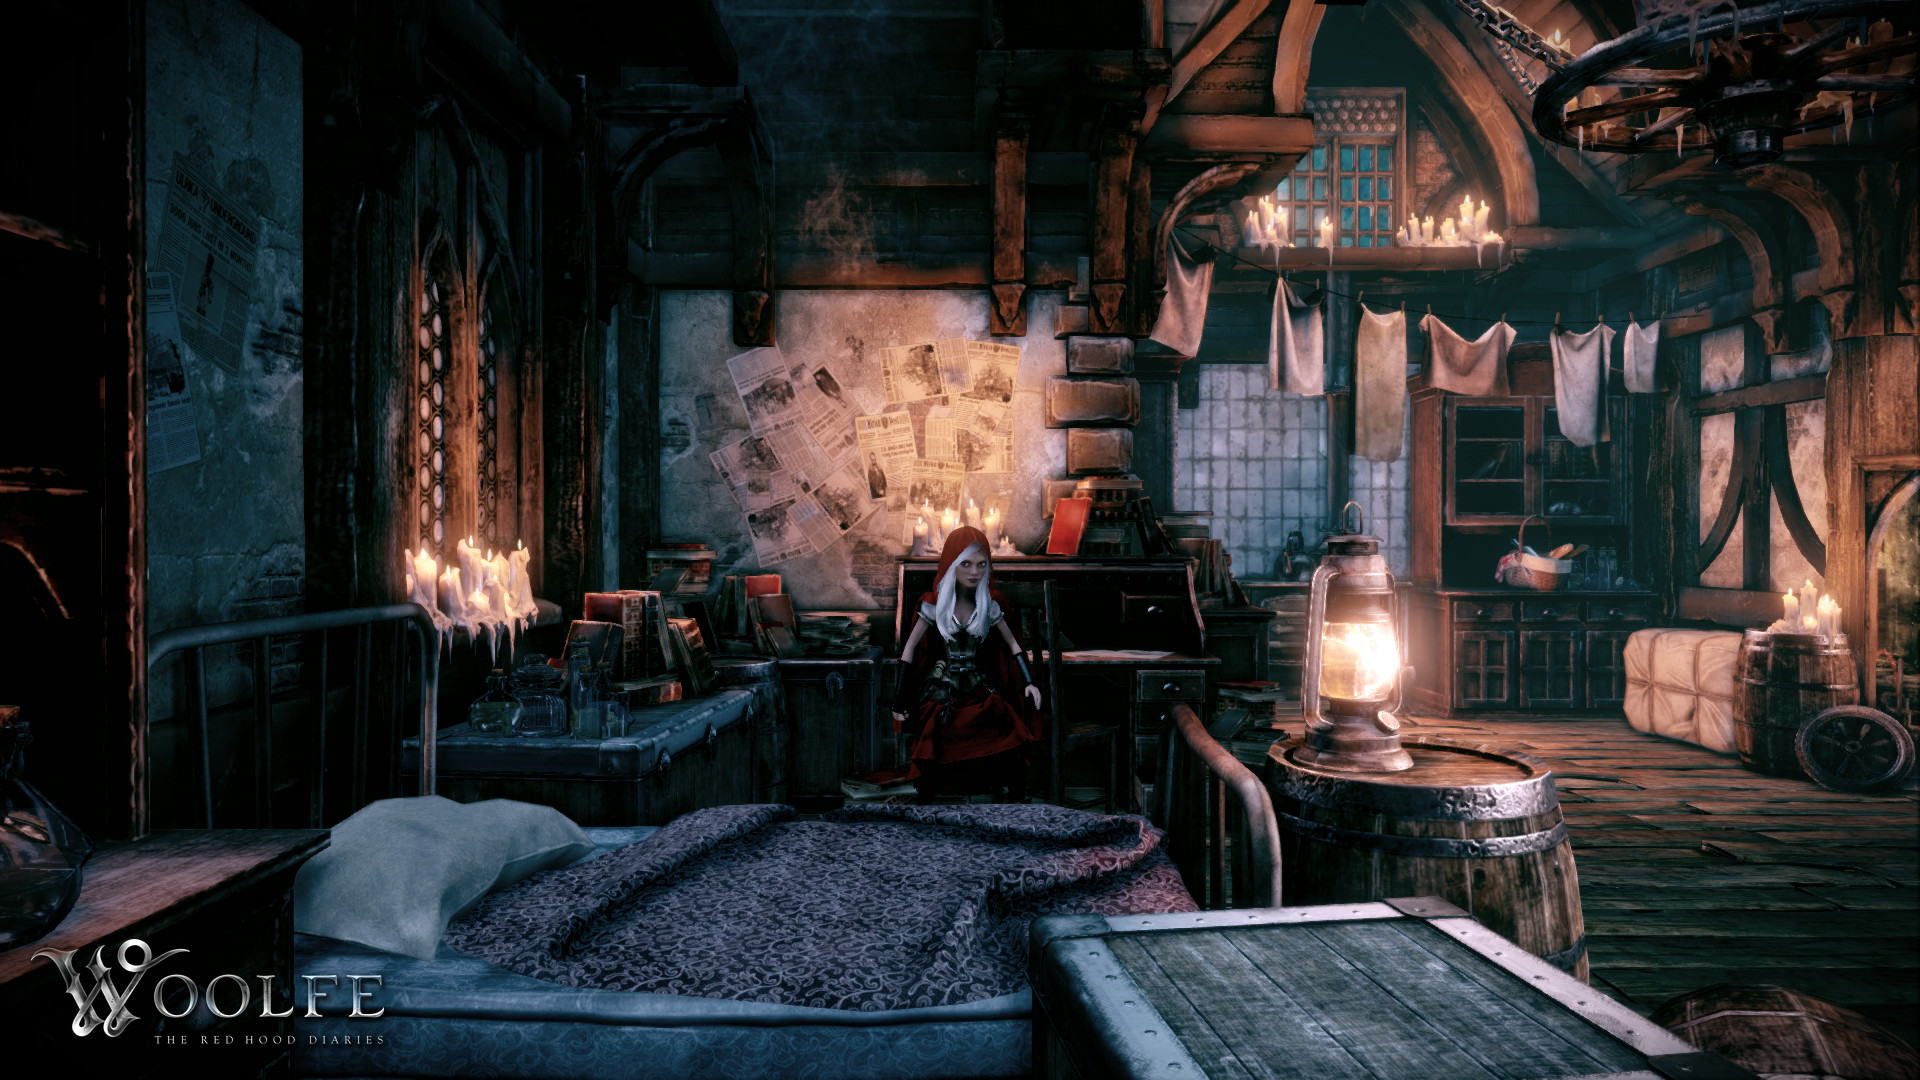 woolfe the red hoood diaries 1